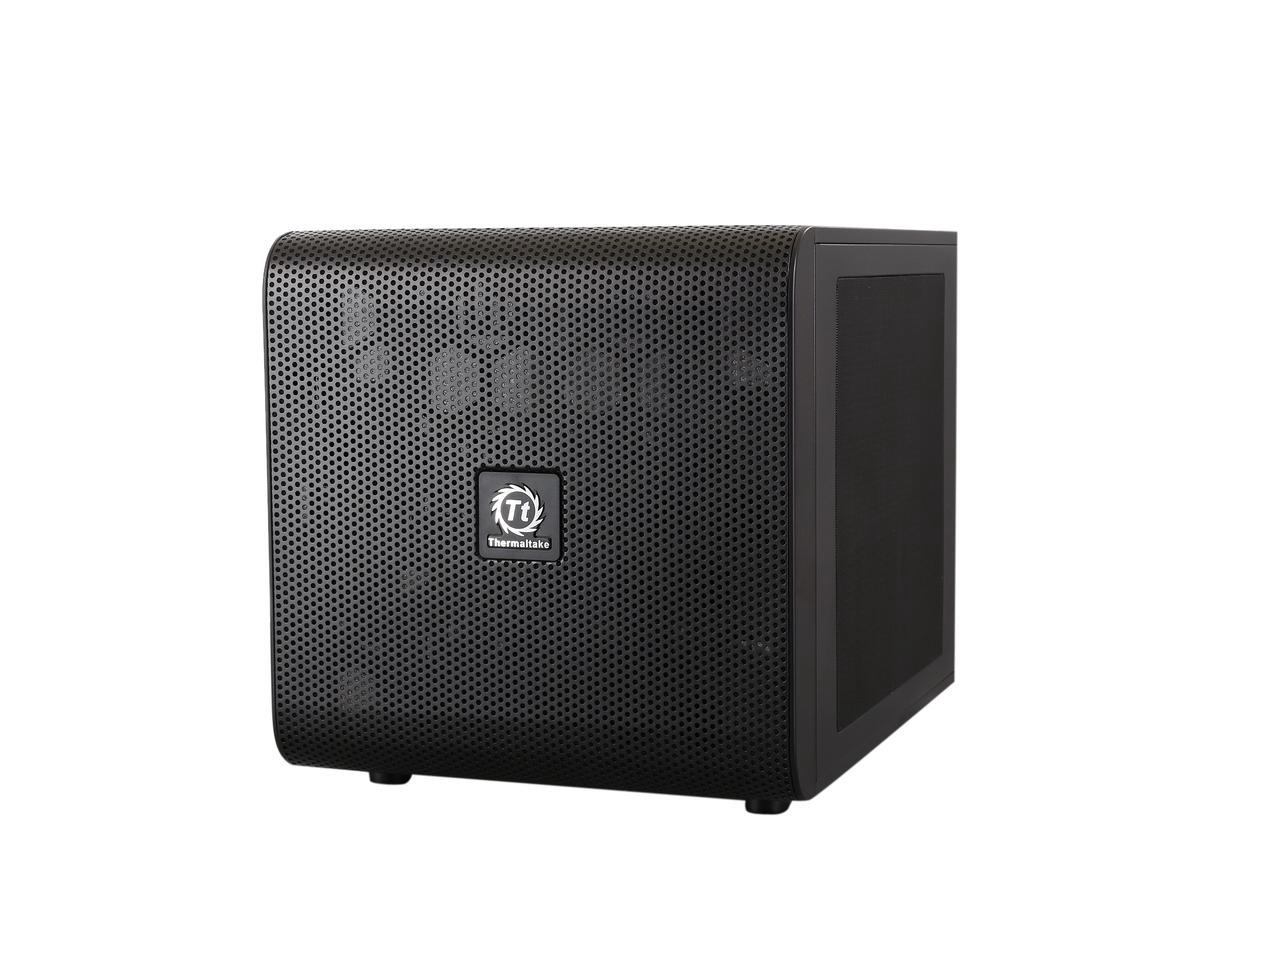 Thermaltake v21 Chassis (Micro ATX Cube)